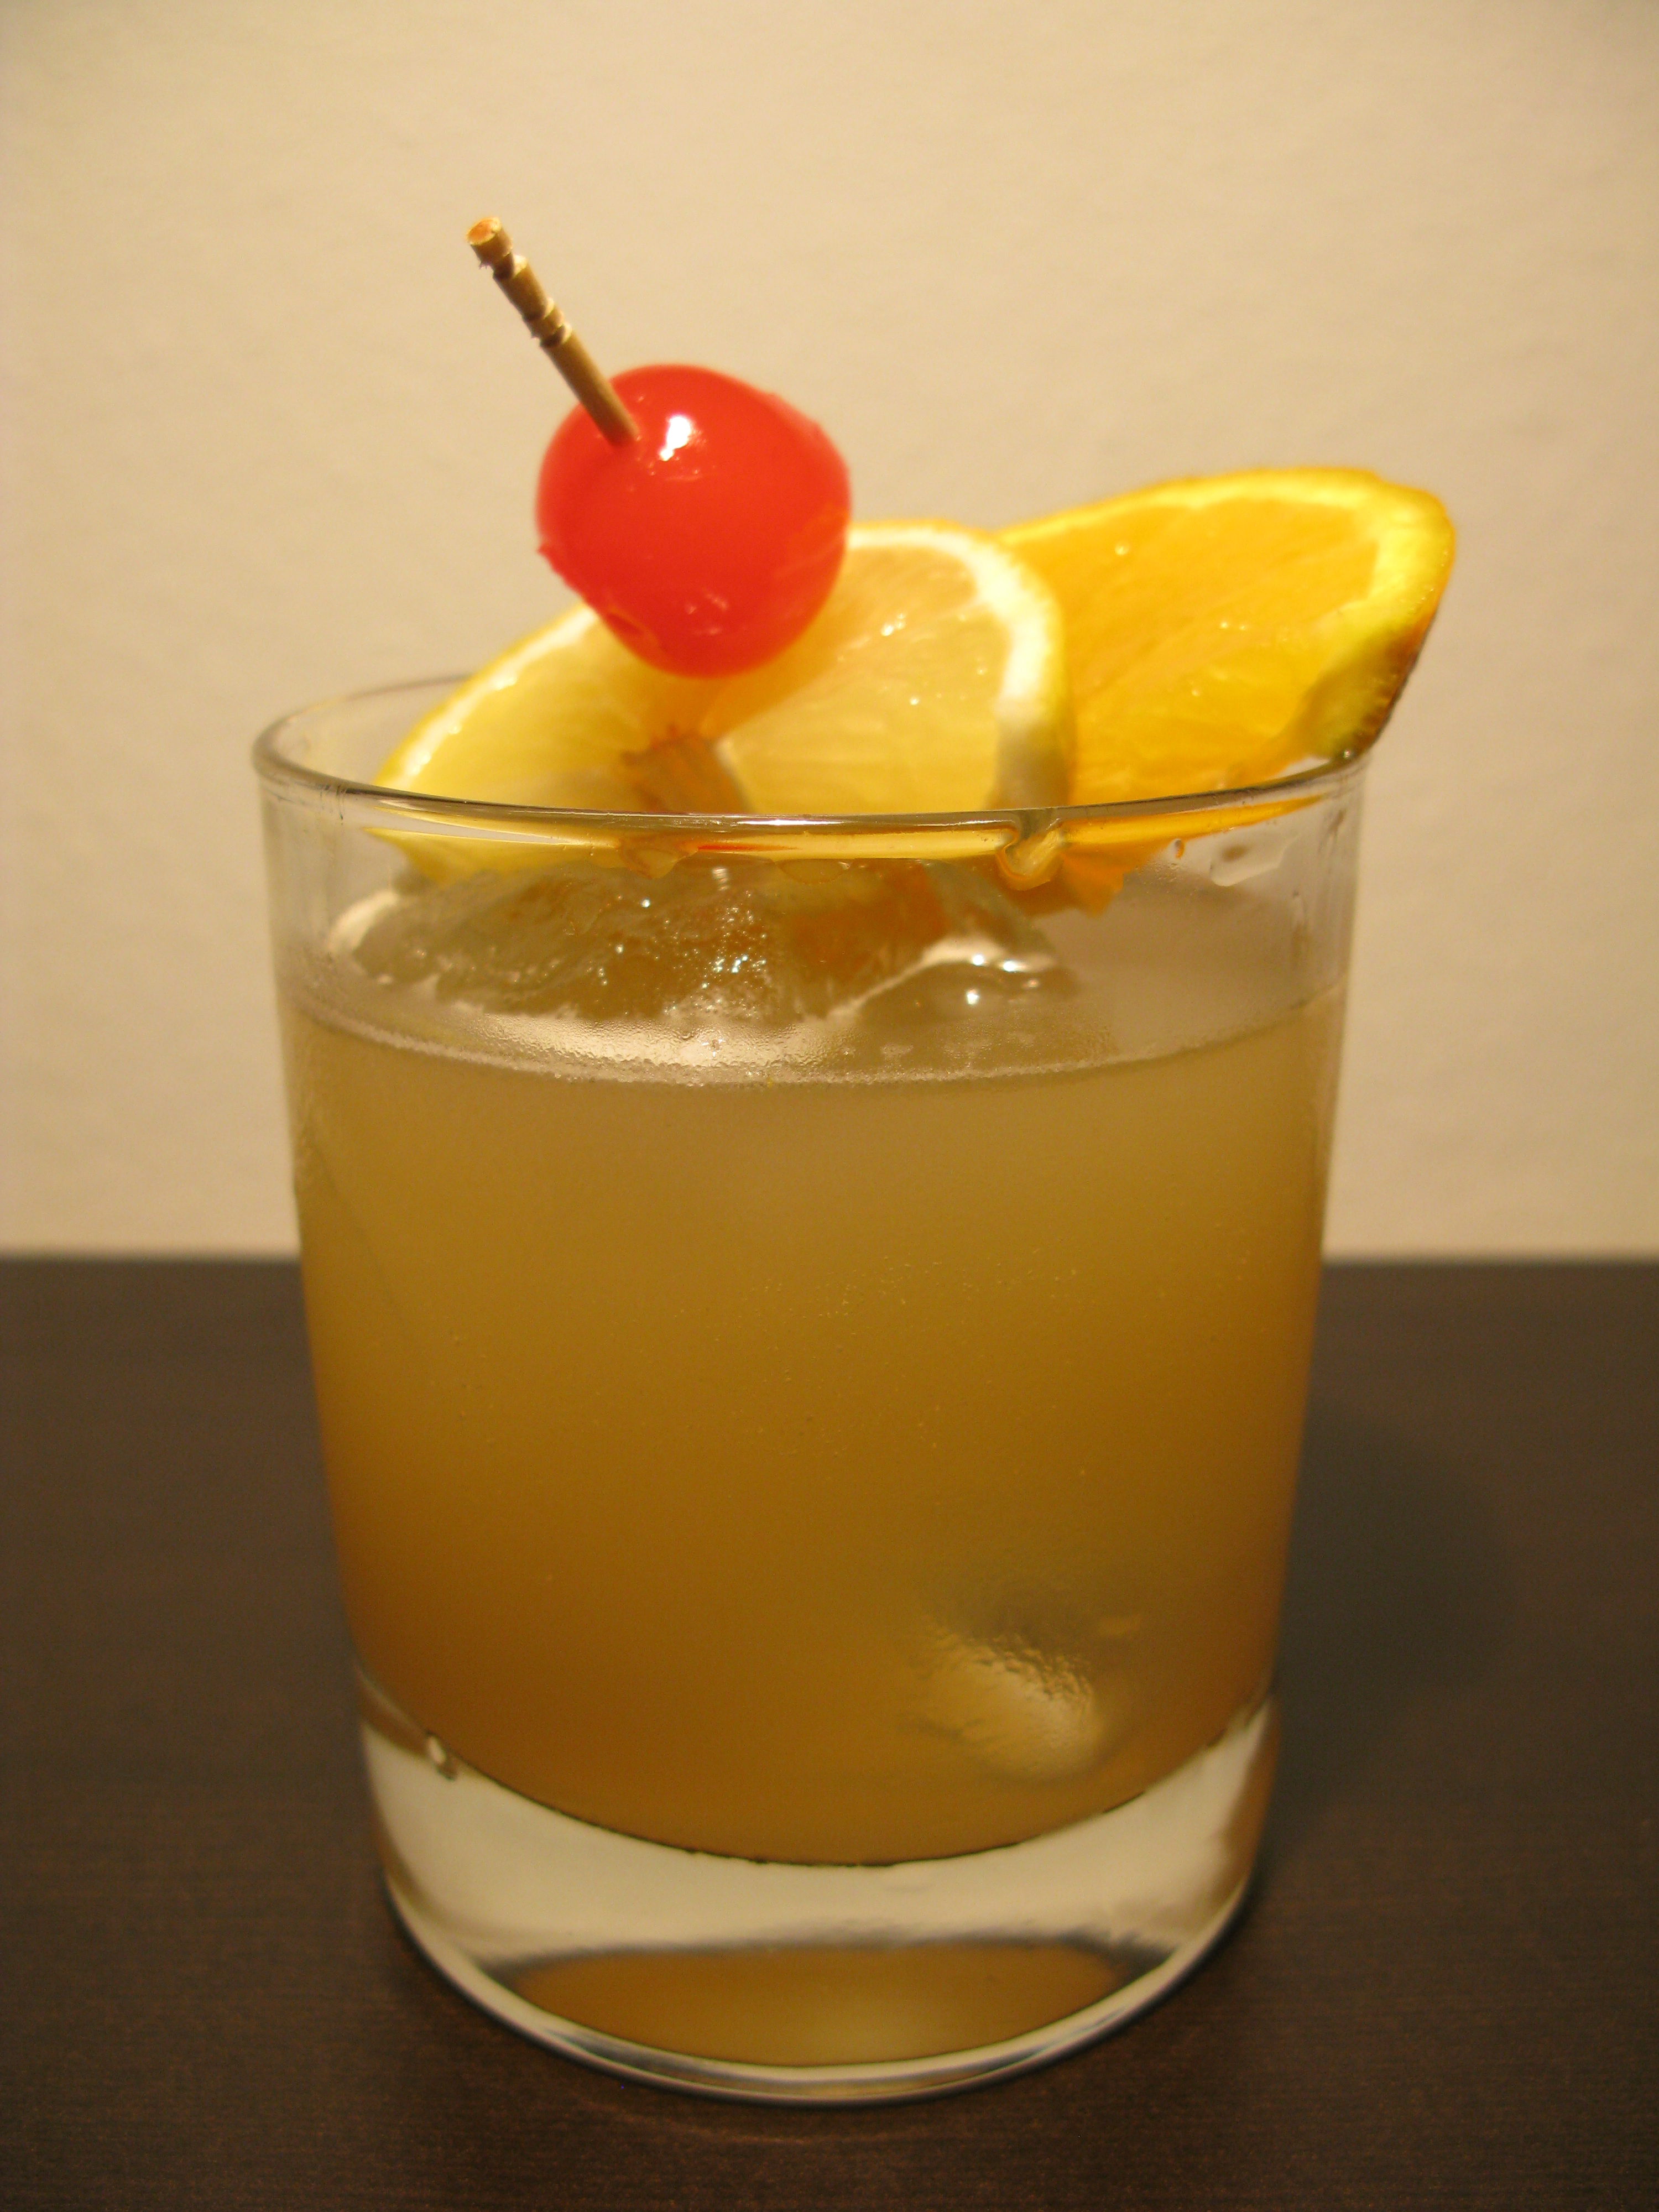 File:Whisky Sour.jpg - Wikimedia Commons